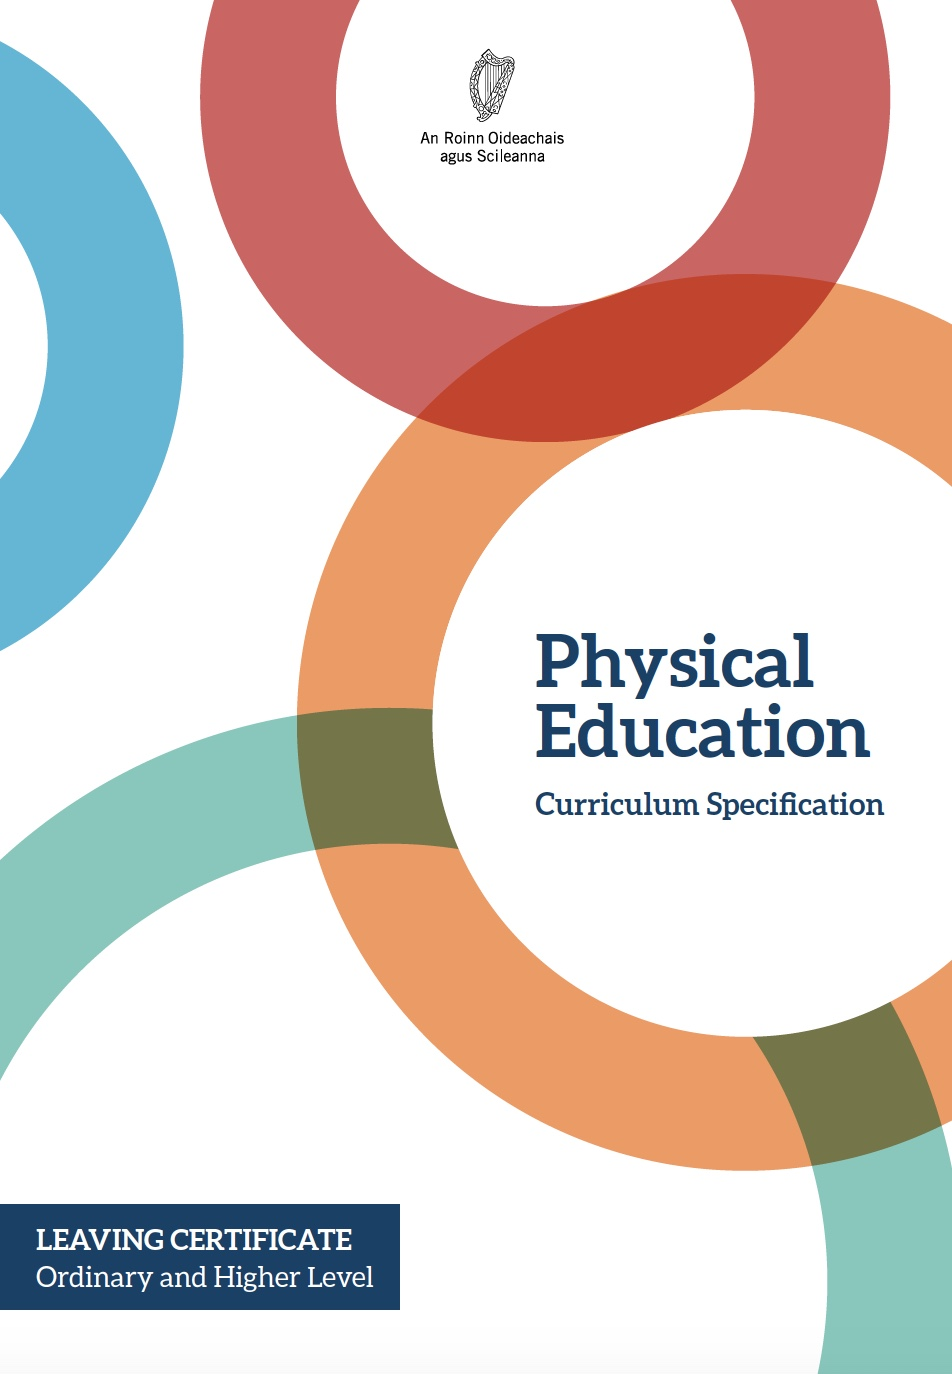 Leaving Certificate Physical Education Examinable Announced